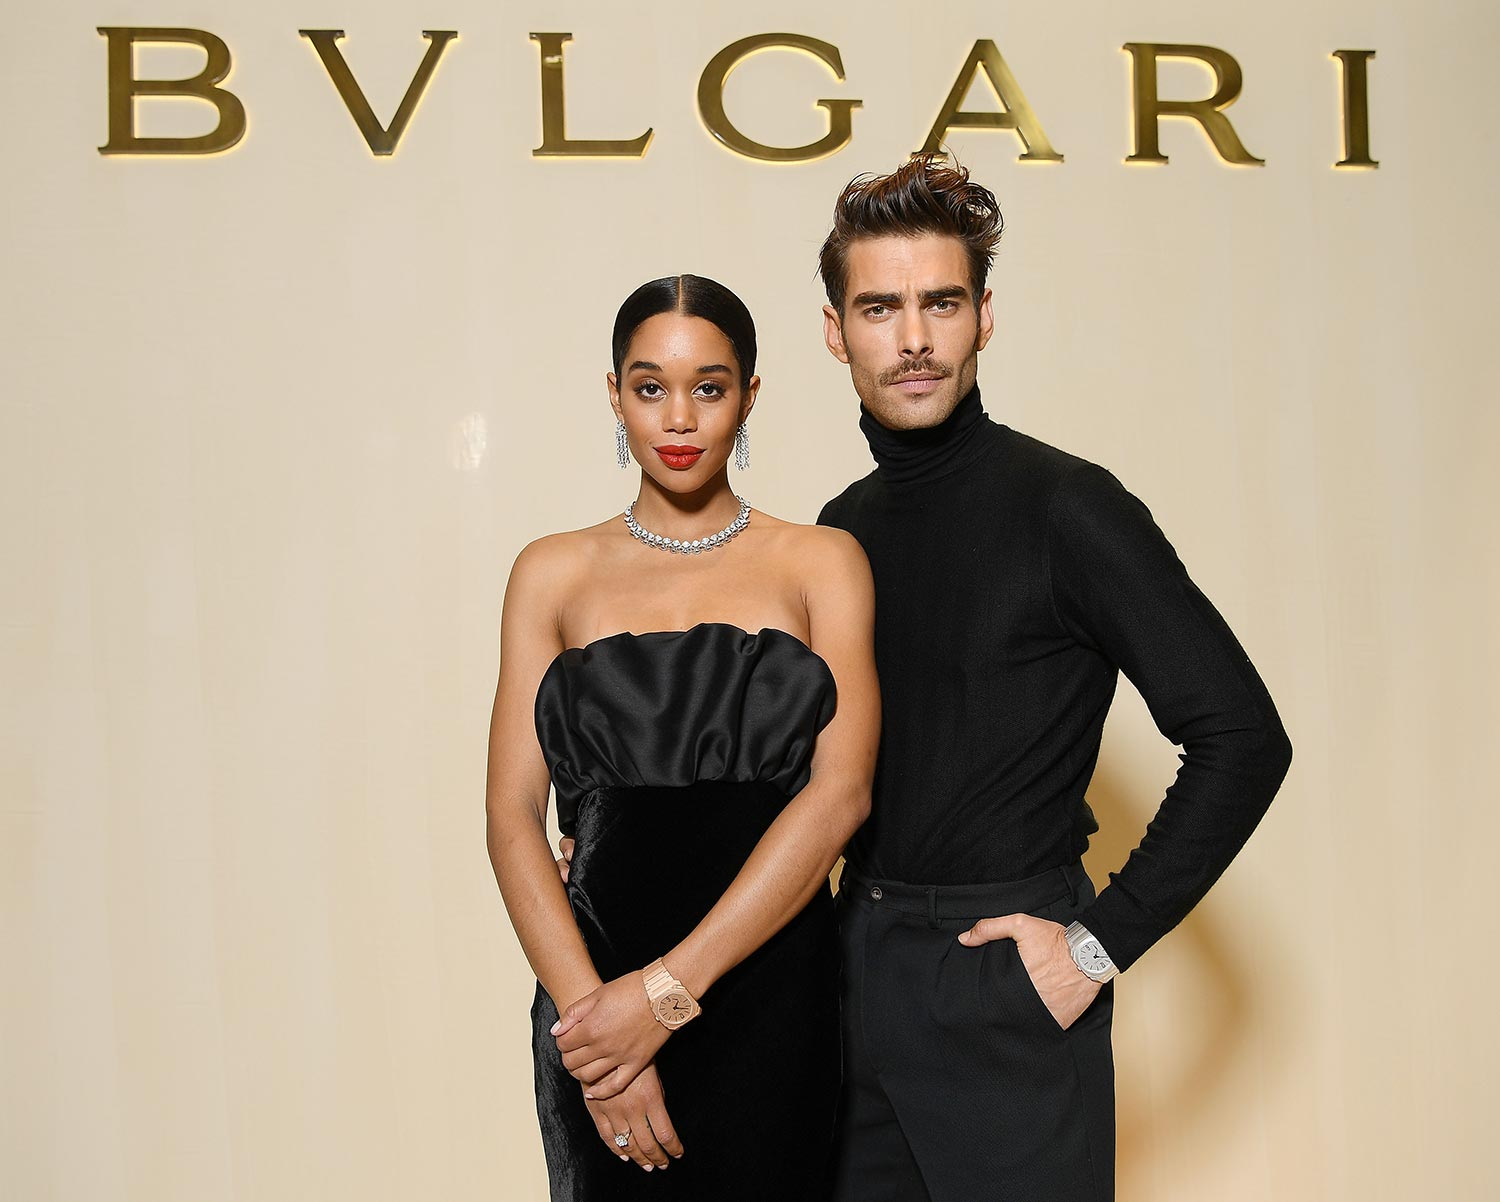 Bulgari Basel Press Party - Laura Harrier, Jon Kortajarena - Hair & makeup Massimo Serini